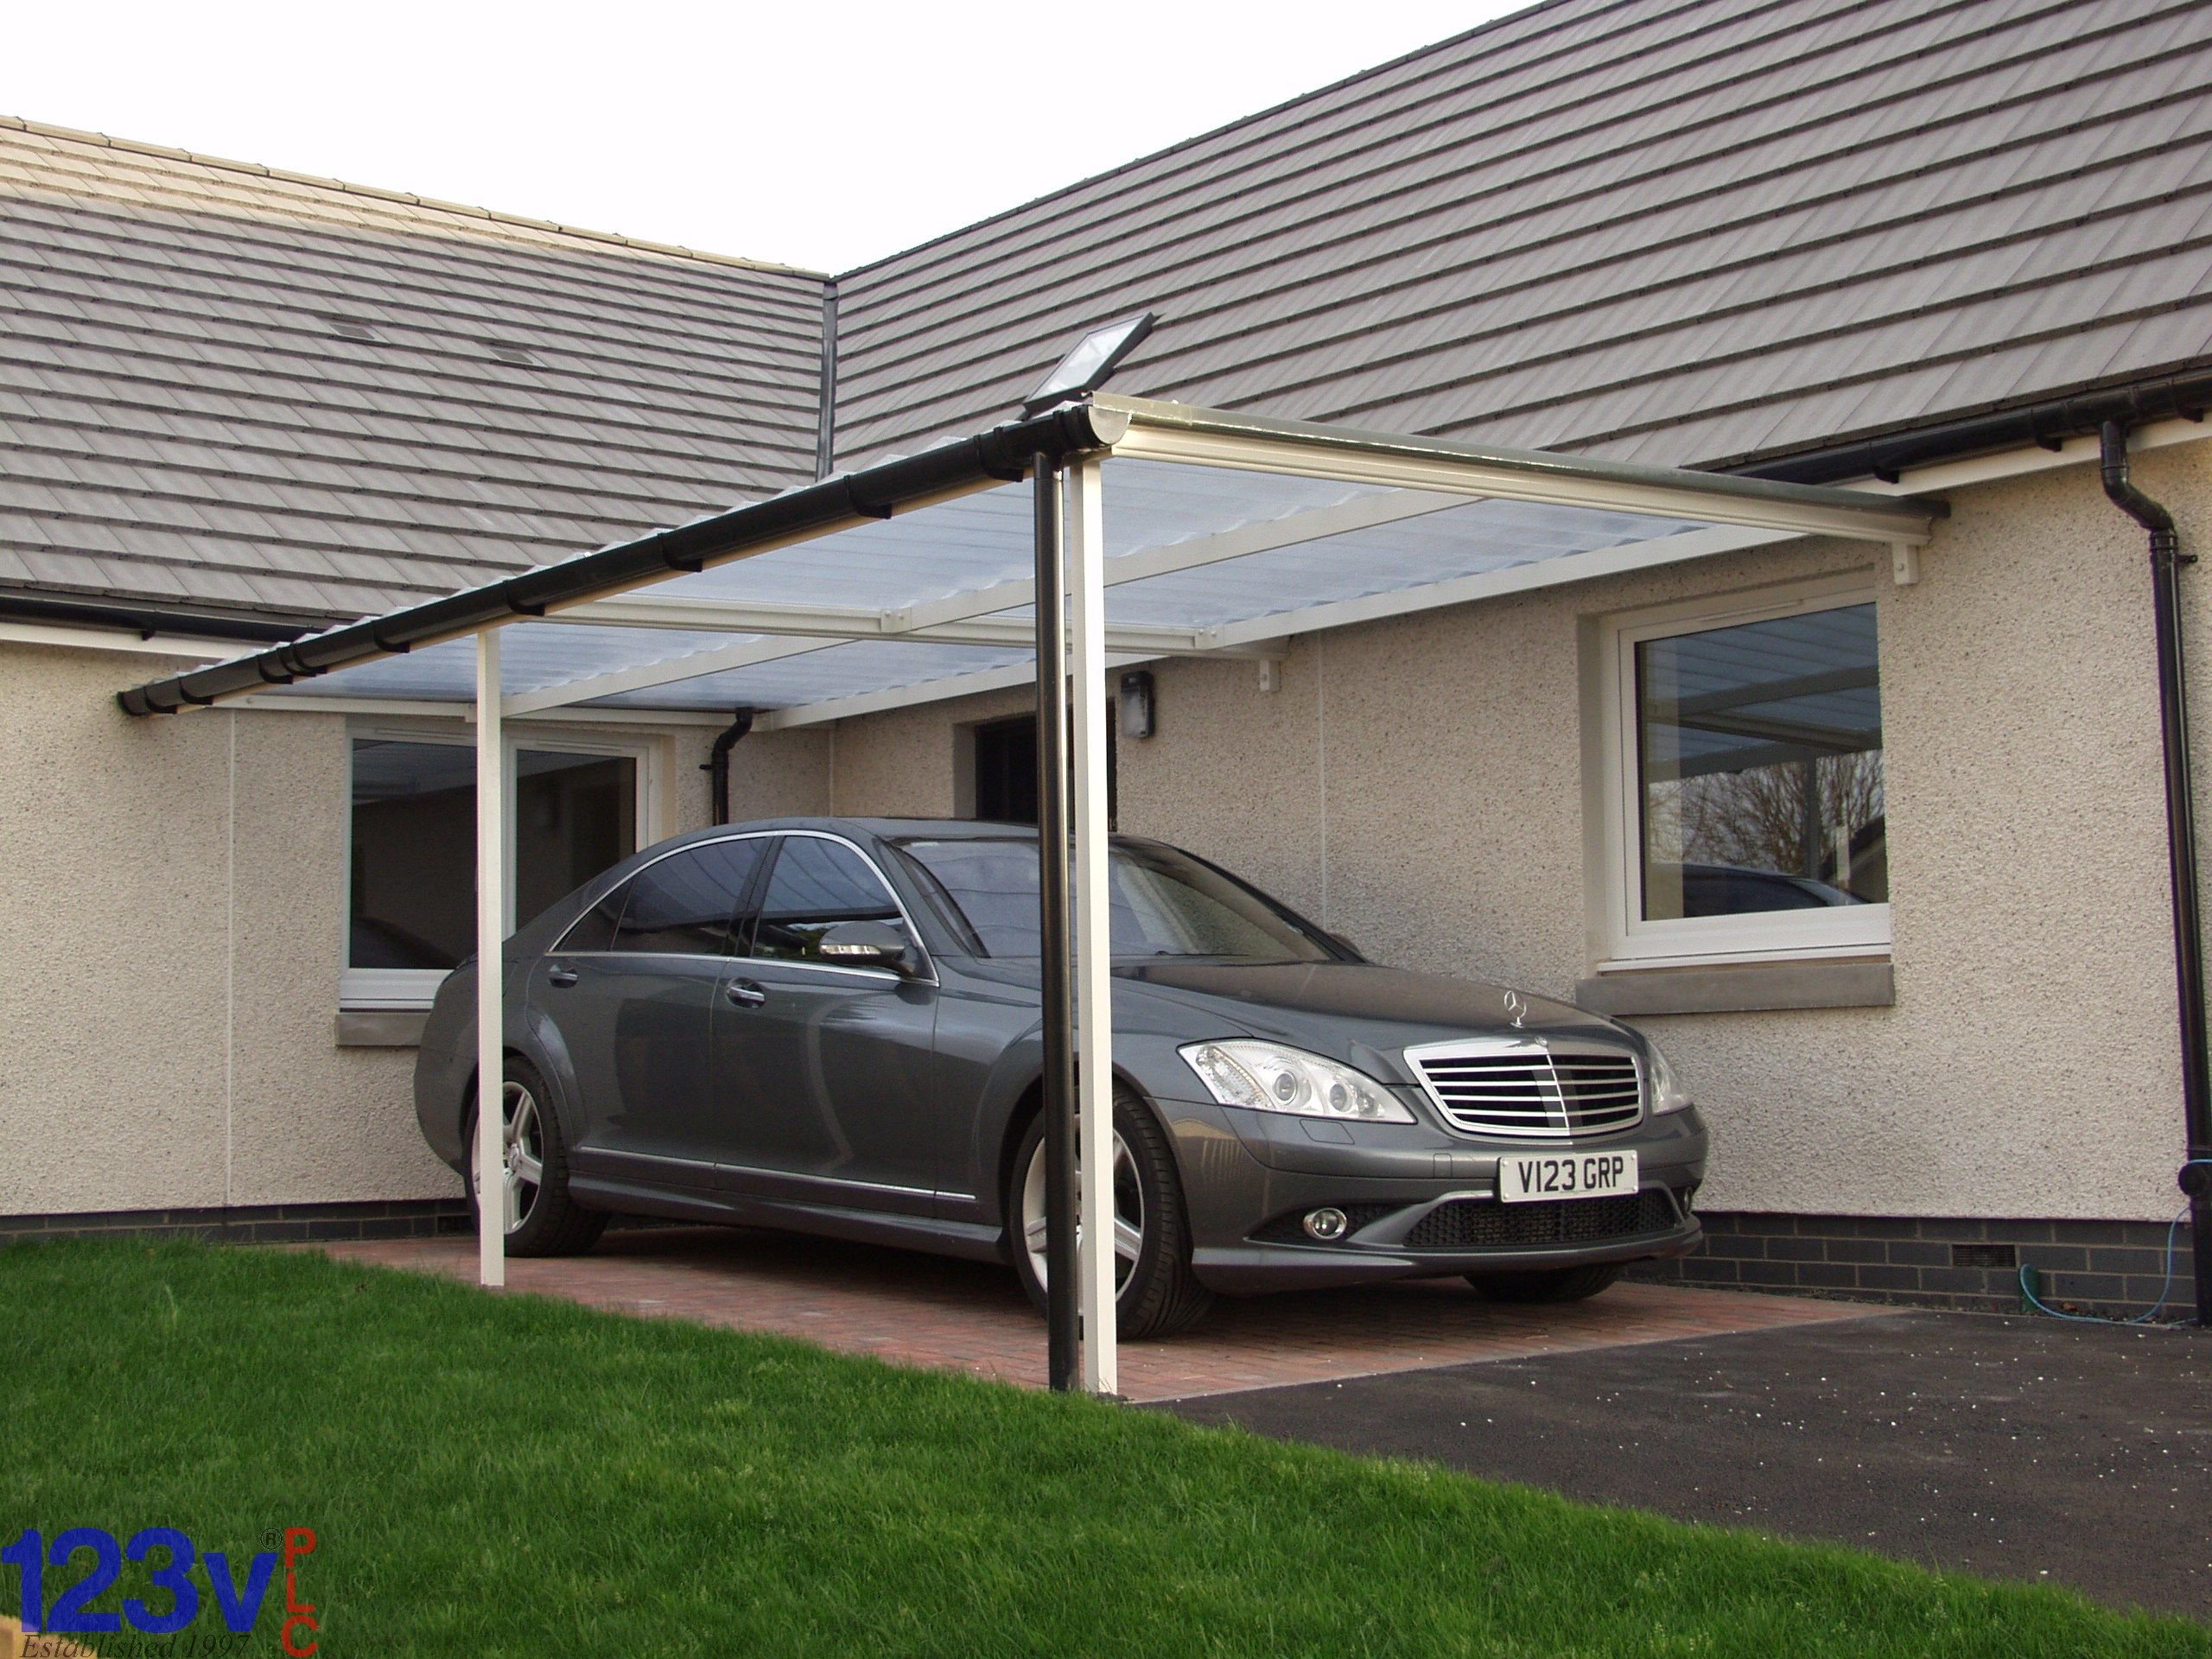 123v Carport Canopy neat simple practical. in u0026 out of the house & 123v Carport Canopy neat simple practical. in u0026 out of the ...